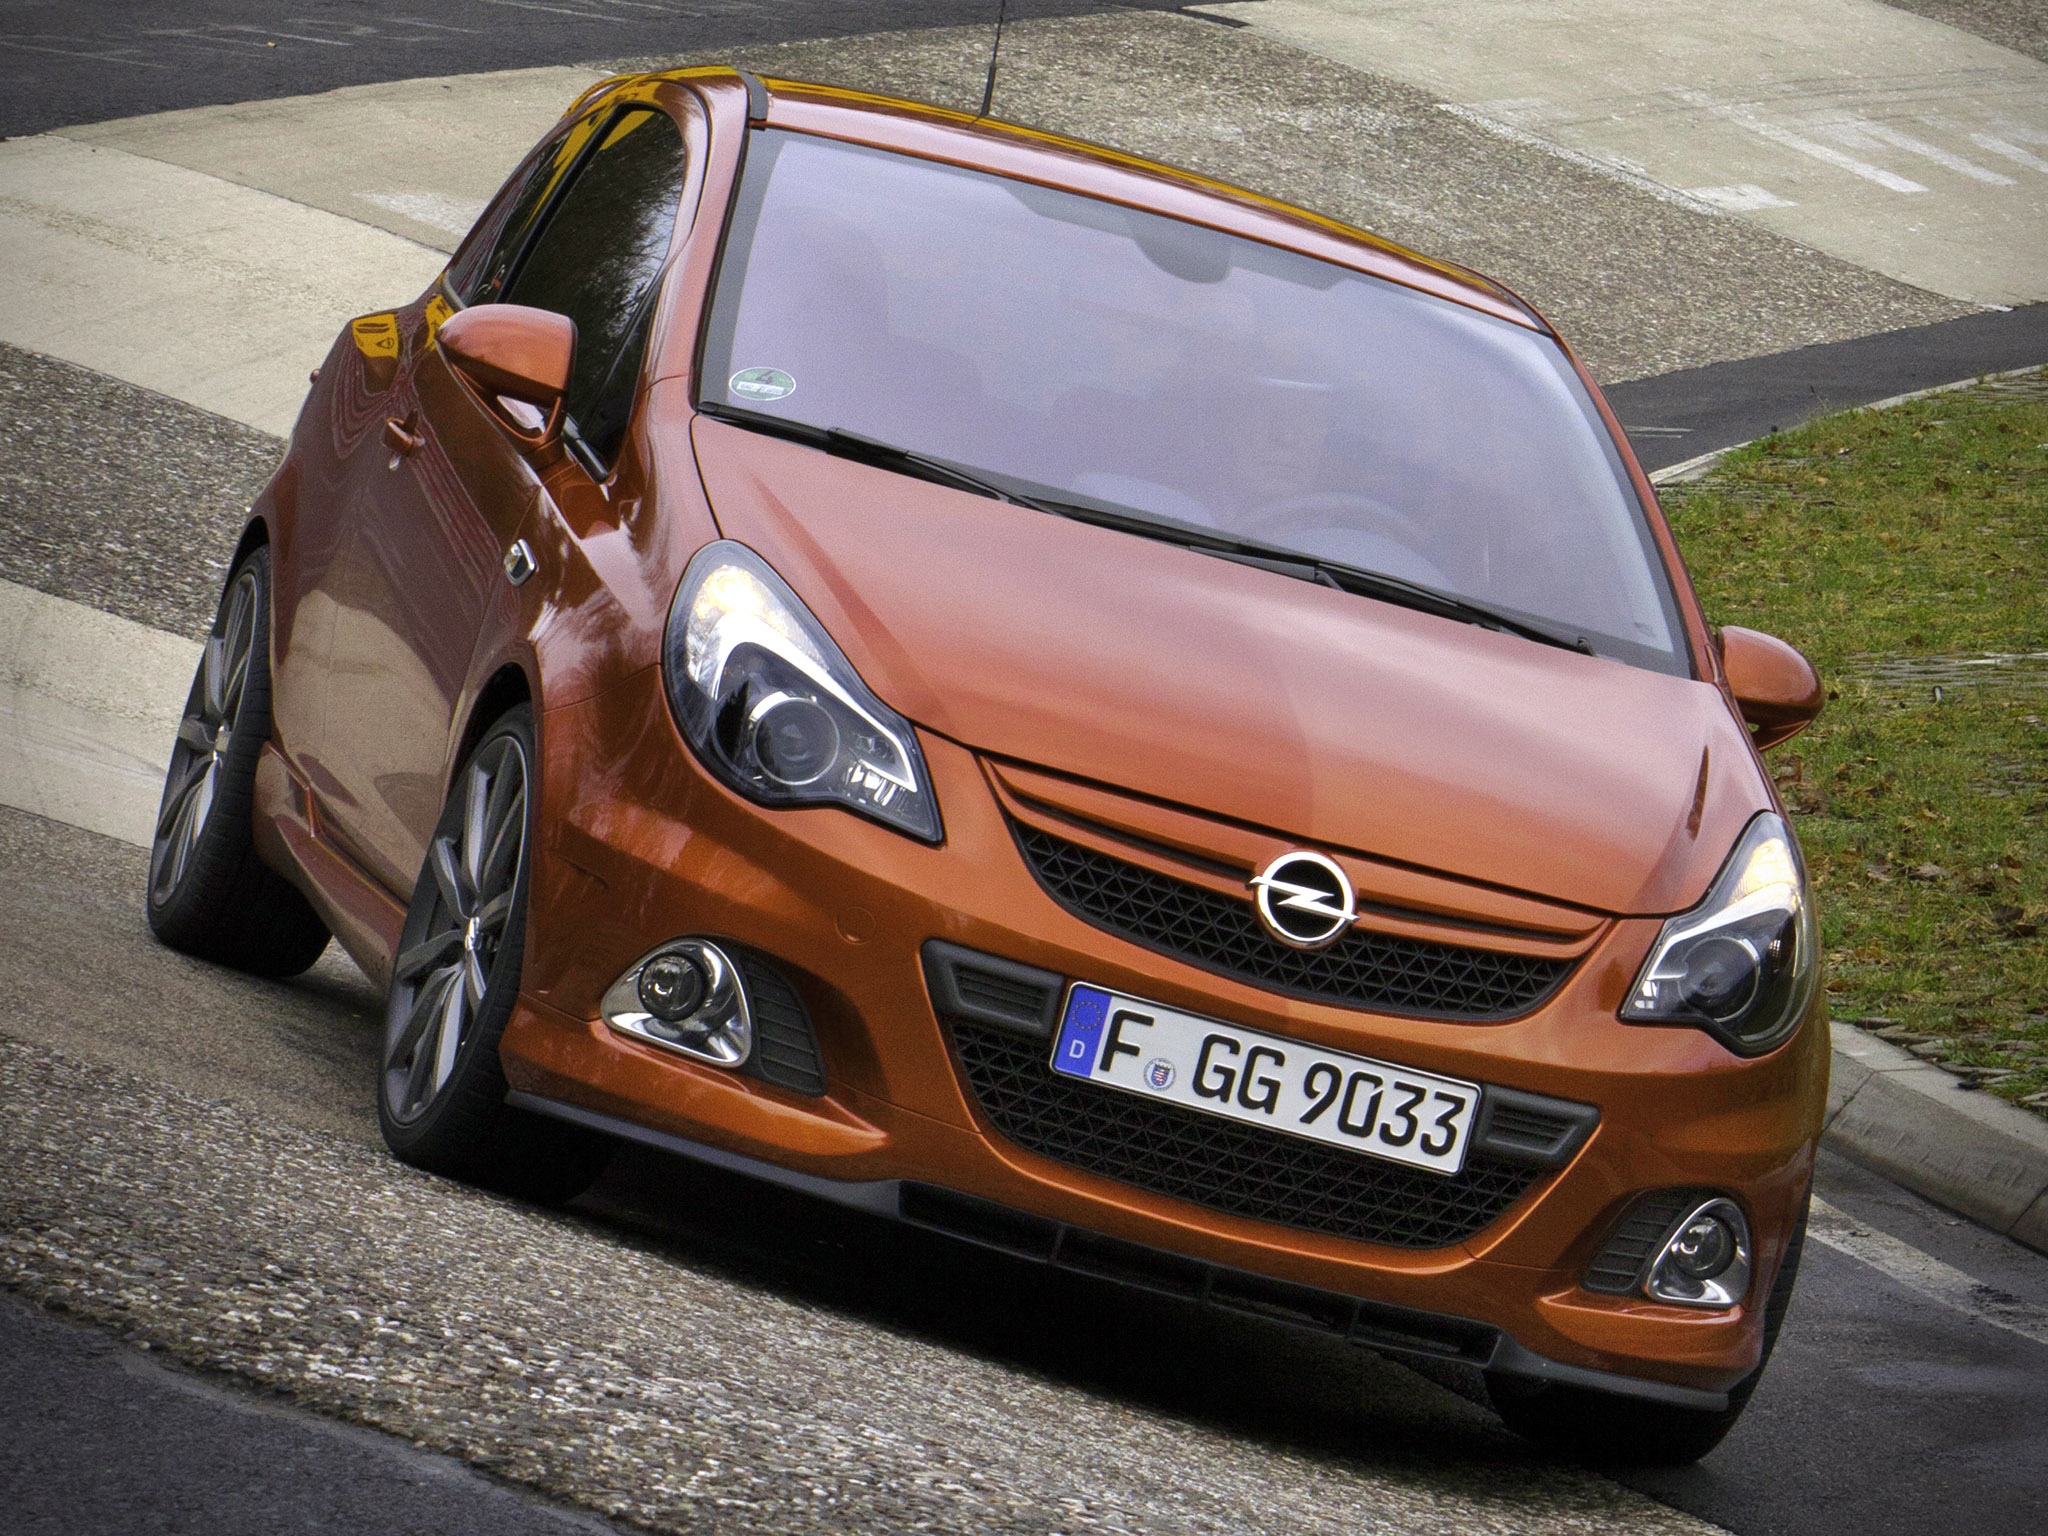 opel corsa opc nurburgring edition 2011 opel corsa opc nurburgring edition 2011 photo 16 car. Black Bedroom Furniture Sets. Home Design Ideas